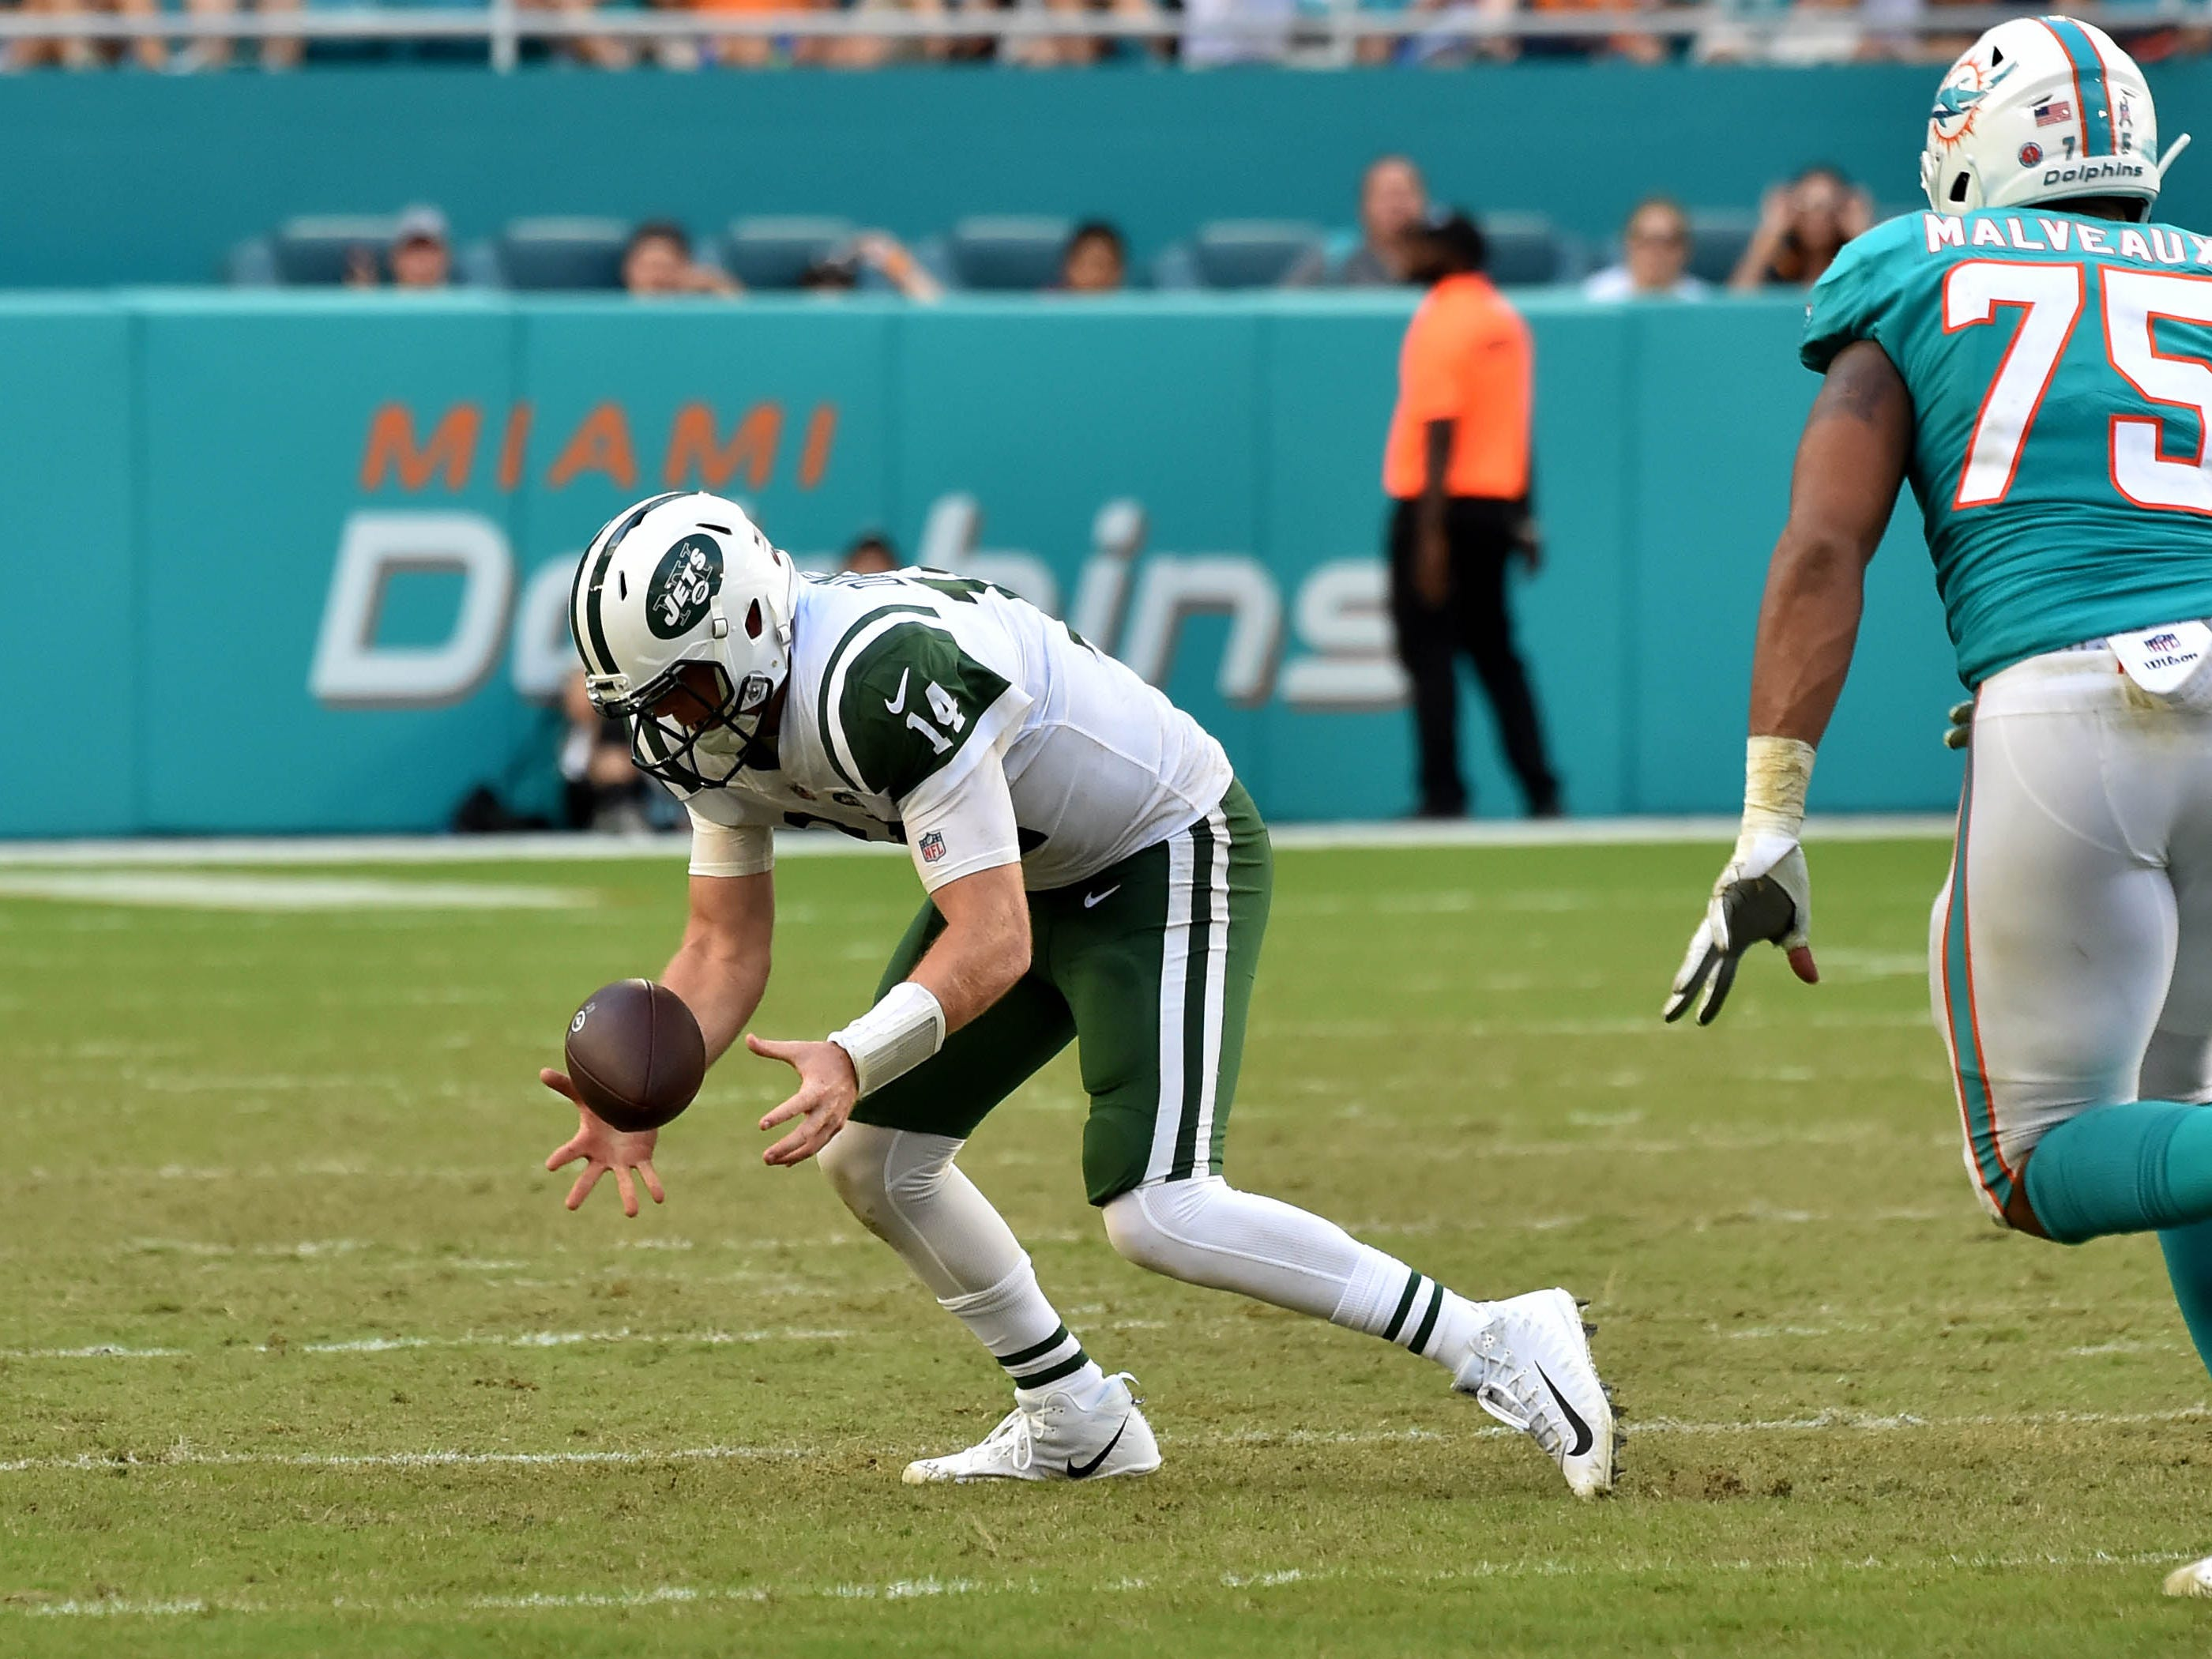 27. Jets (3-6) | Last game: Lost to the Dolphins, 13-6 | Previous ranking: 27